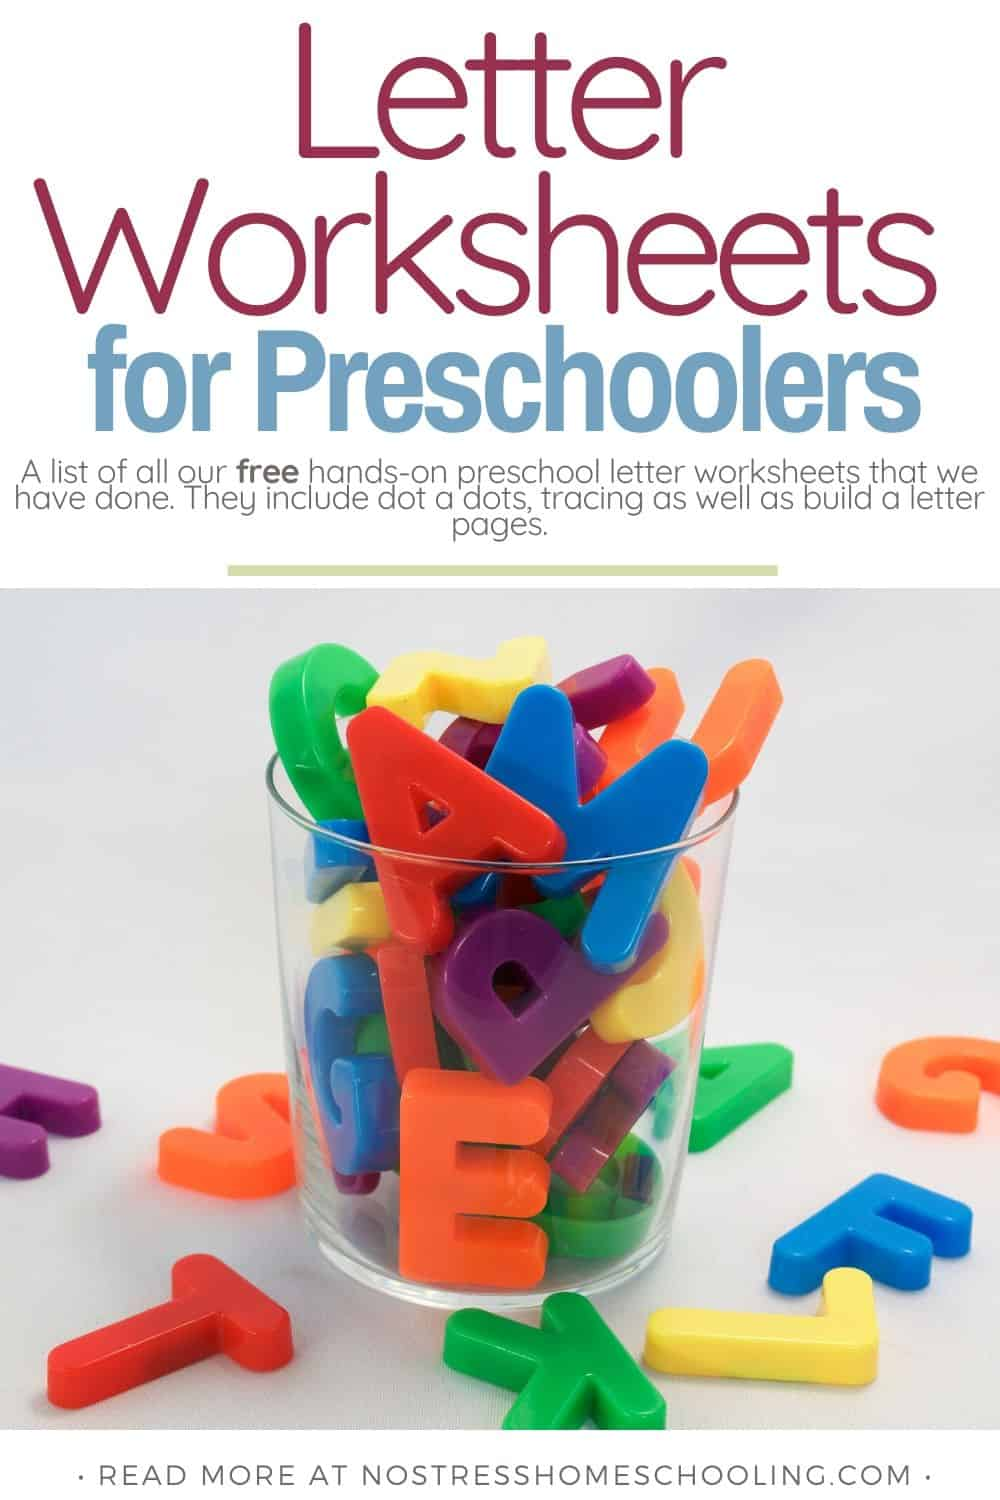 A list of all our free hands-on preschool letter worksheets that we have done. They include dot a dots, tracing as well as build a letter pages.